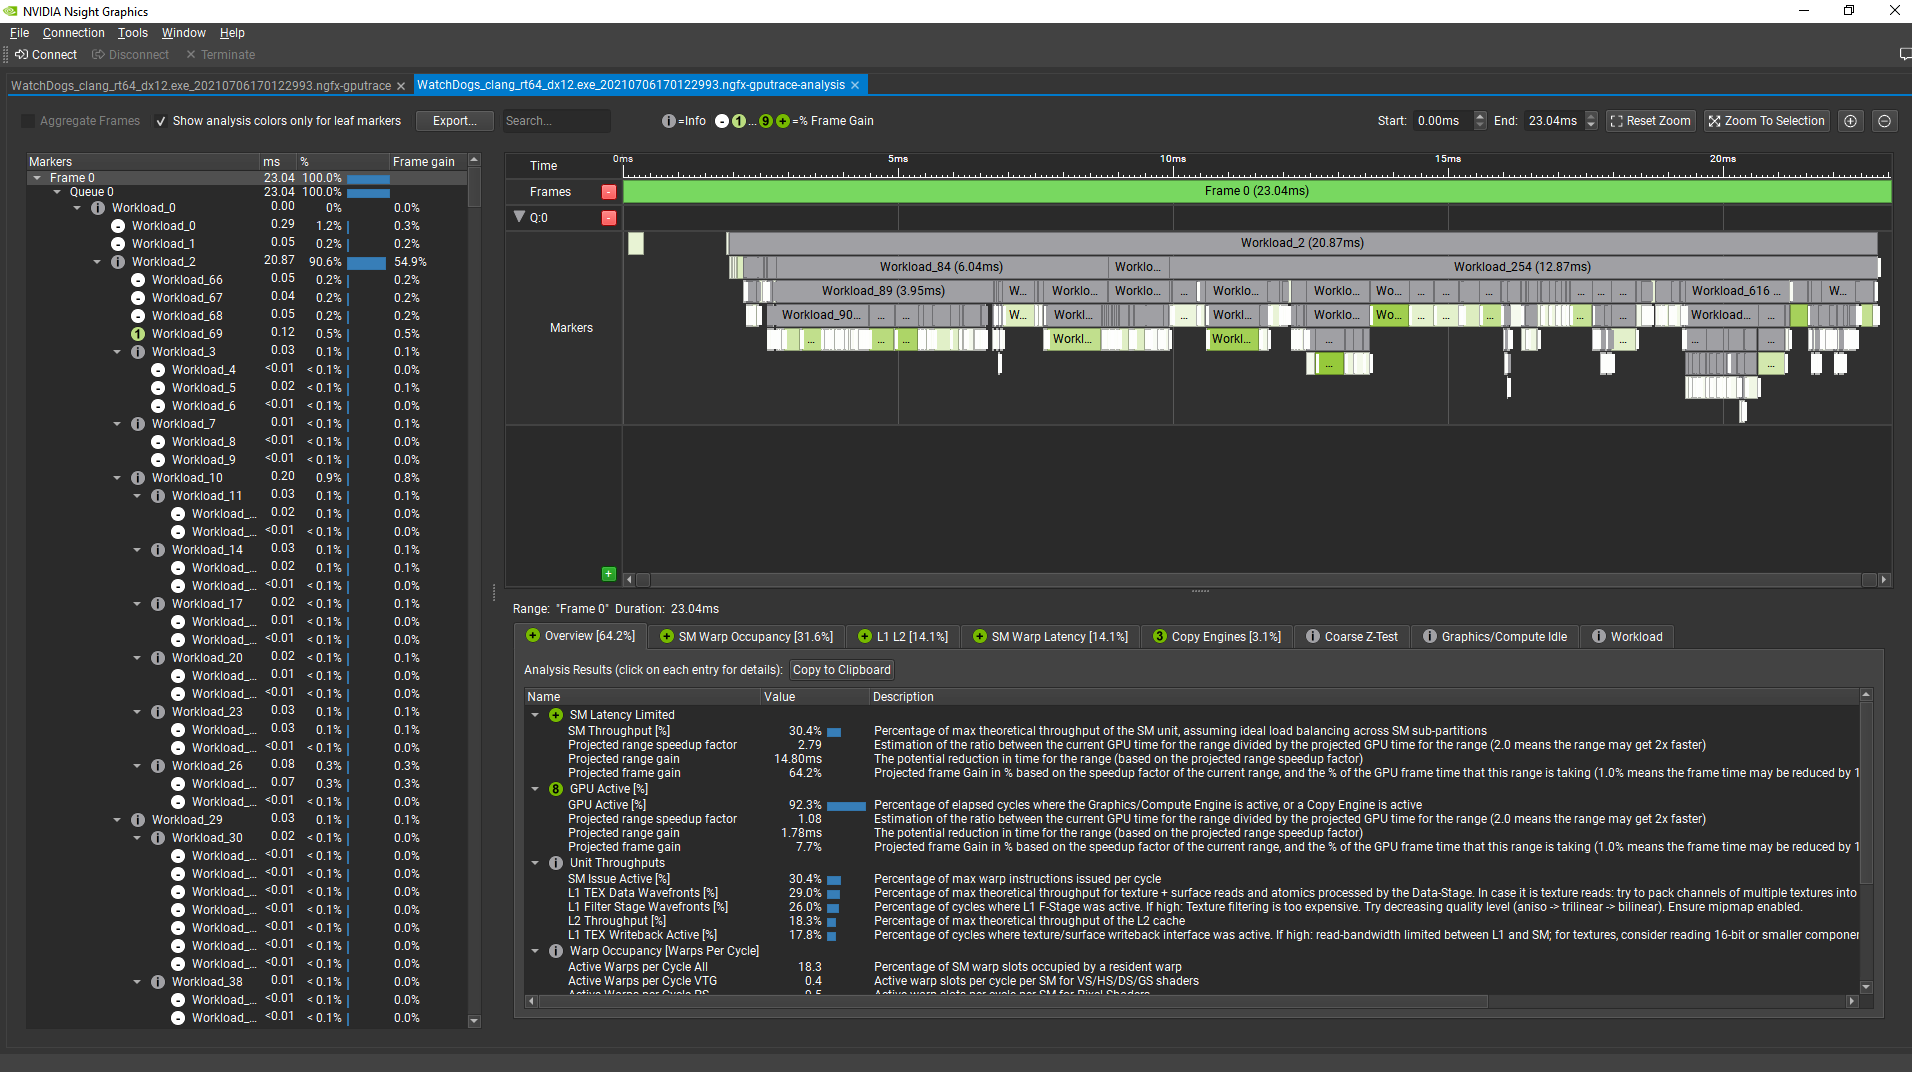 A screenshot from the GPU Trace Analysis tool showing a breakdown of the GPU frame time by marker. The left-side panel shows the marker tree. The bottom panel shows GPU metrics and detected performance opportunities for the selected marker (by default for the whole frame).